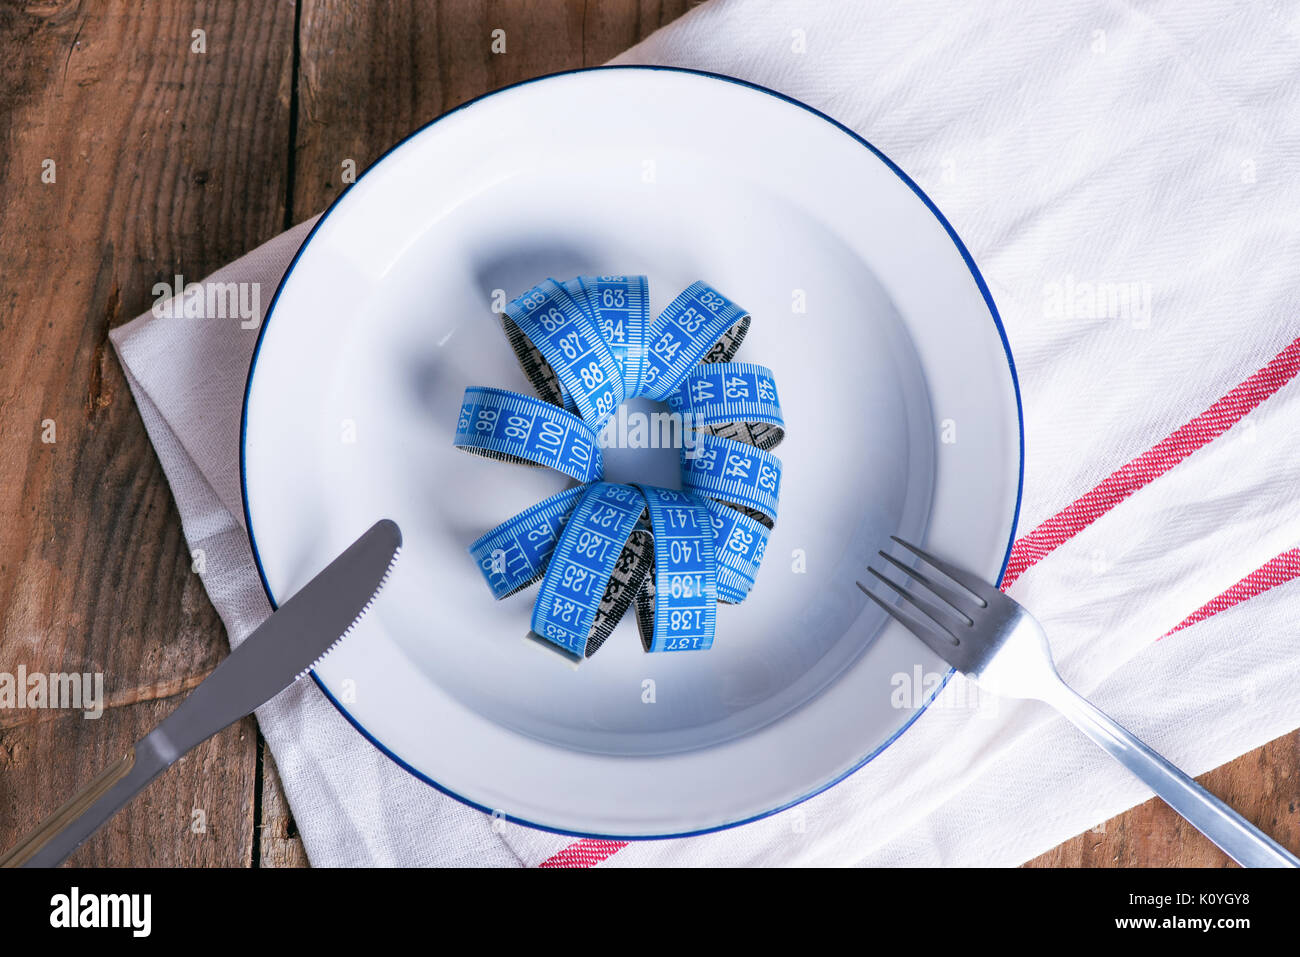 Concept diet and weight loss. Empty plate with measuring tape in the middle of the plate - Stock Image